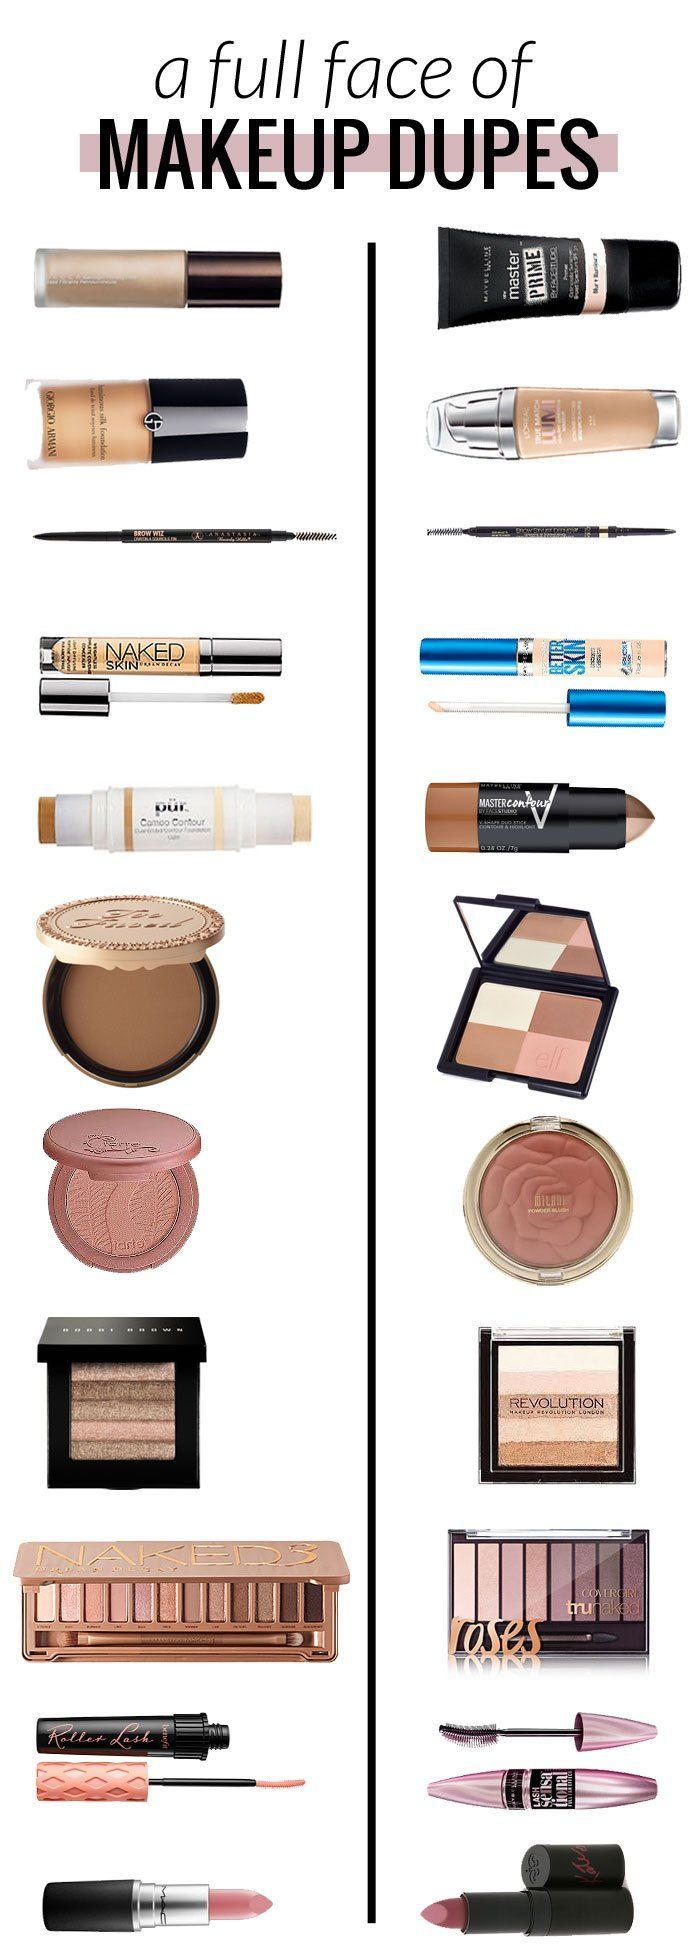 A Full Face of Makeup Dupes - Half High End, Half Drugstore